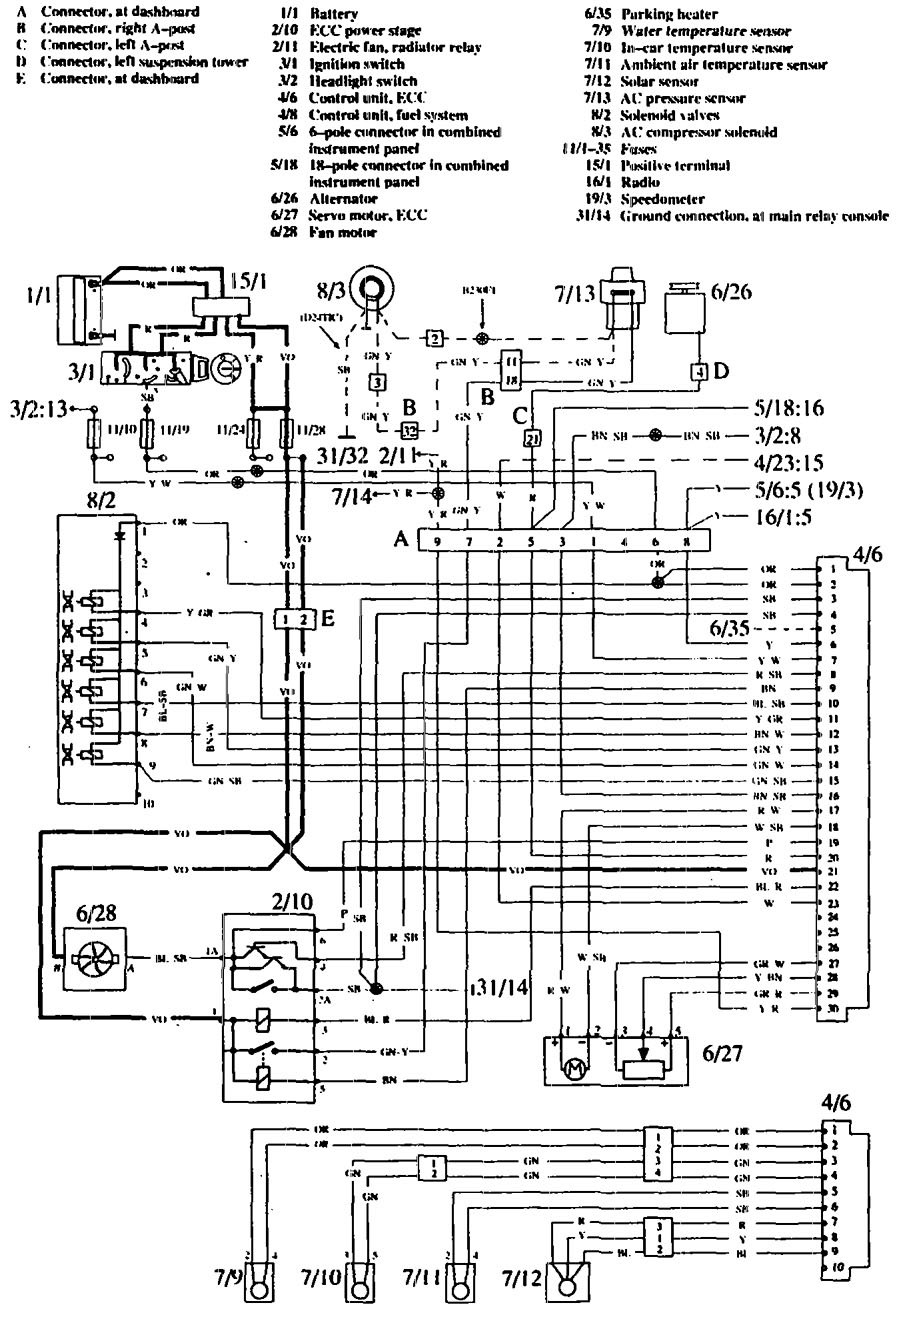 hight resolution of volvo 760 engine diagram wiring diagram data name volvo 760 engine diagram